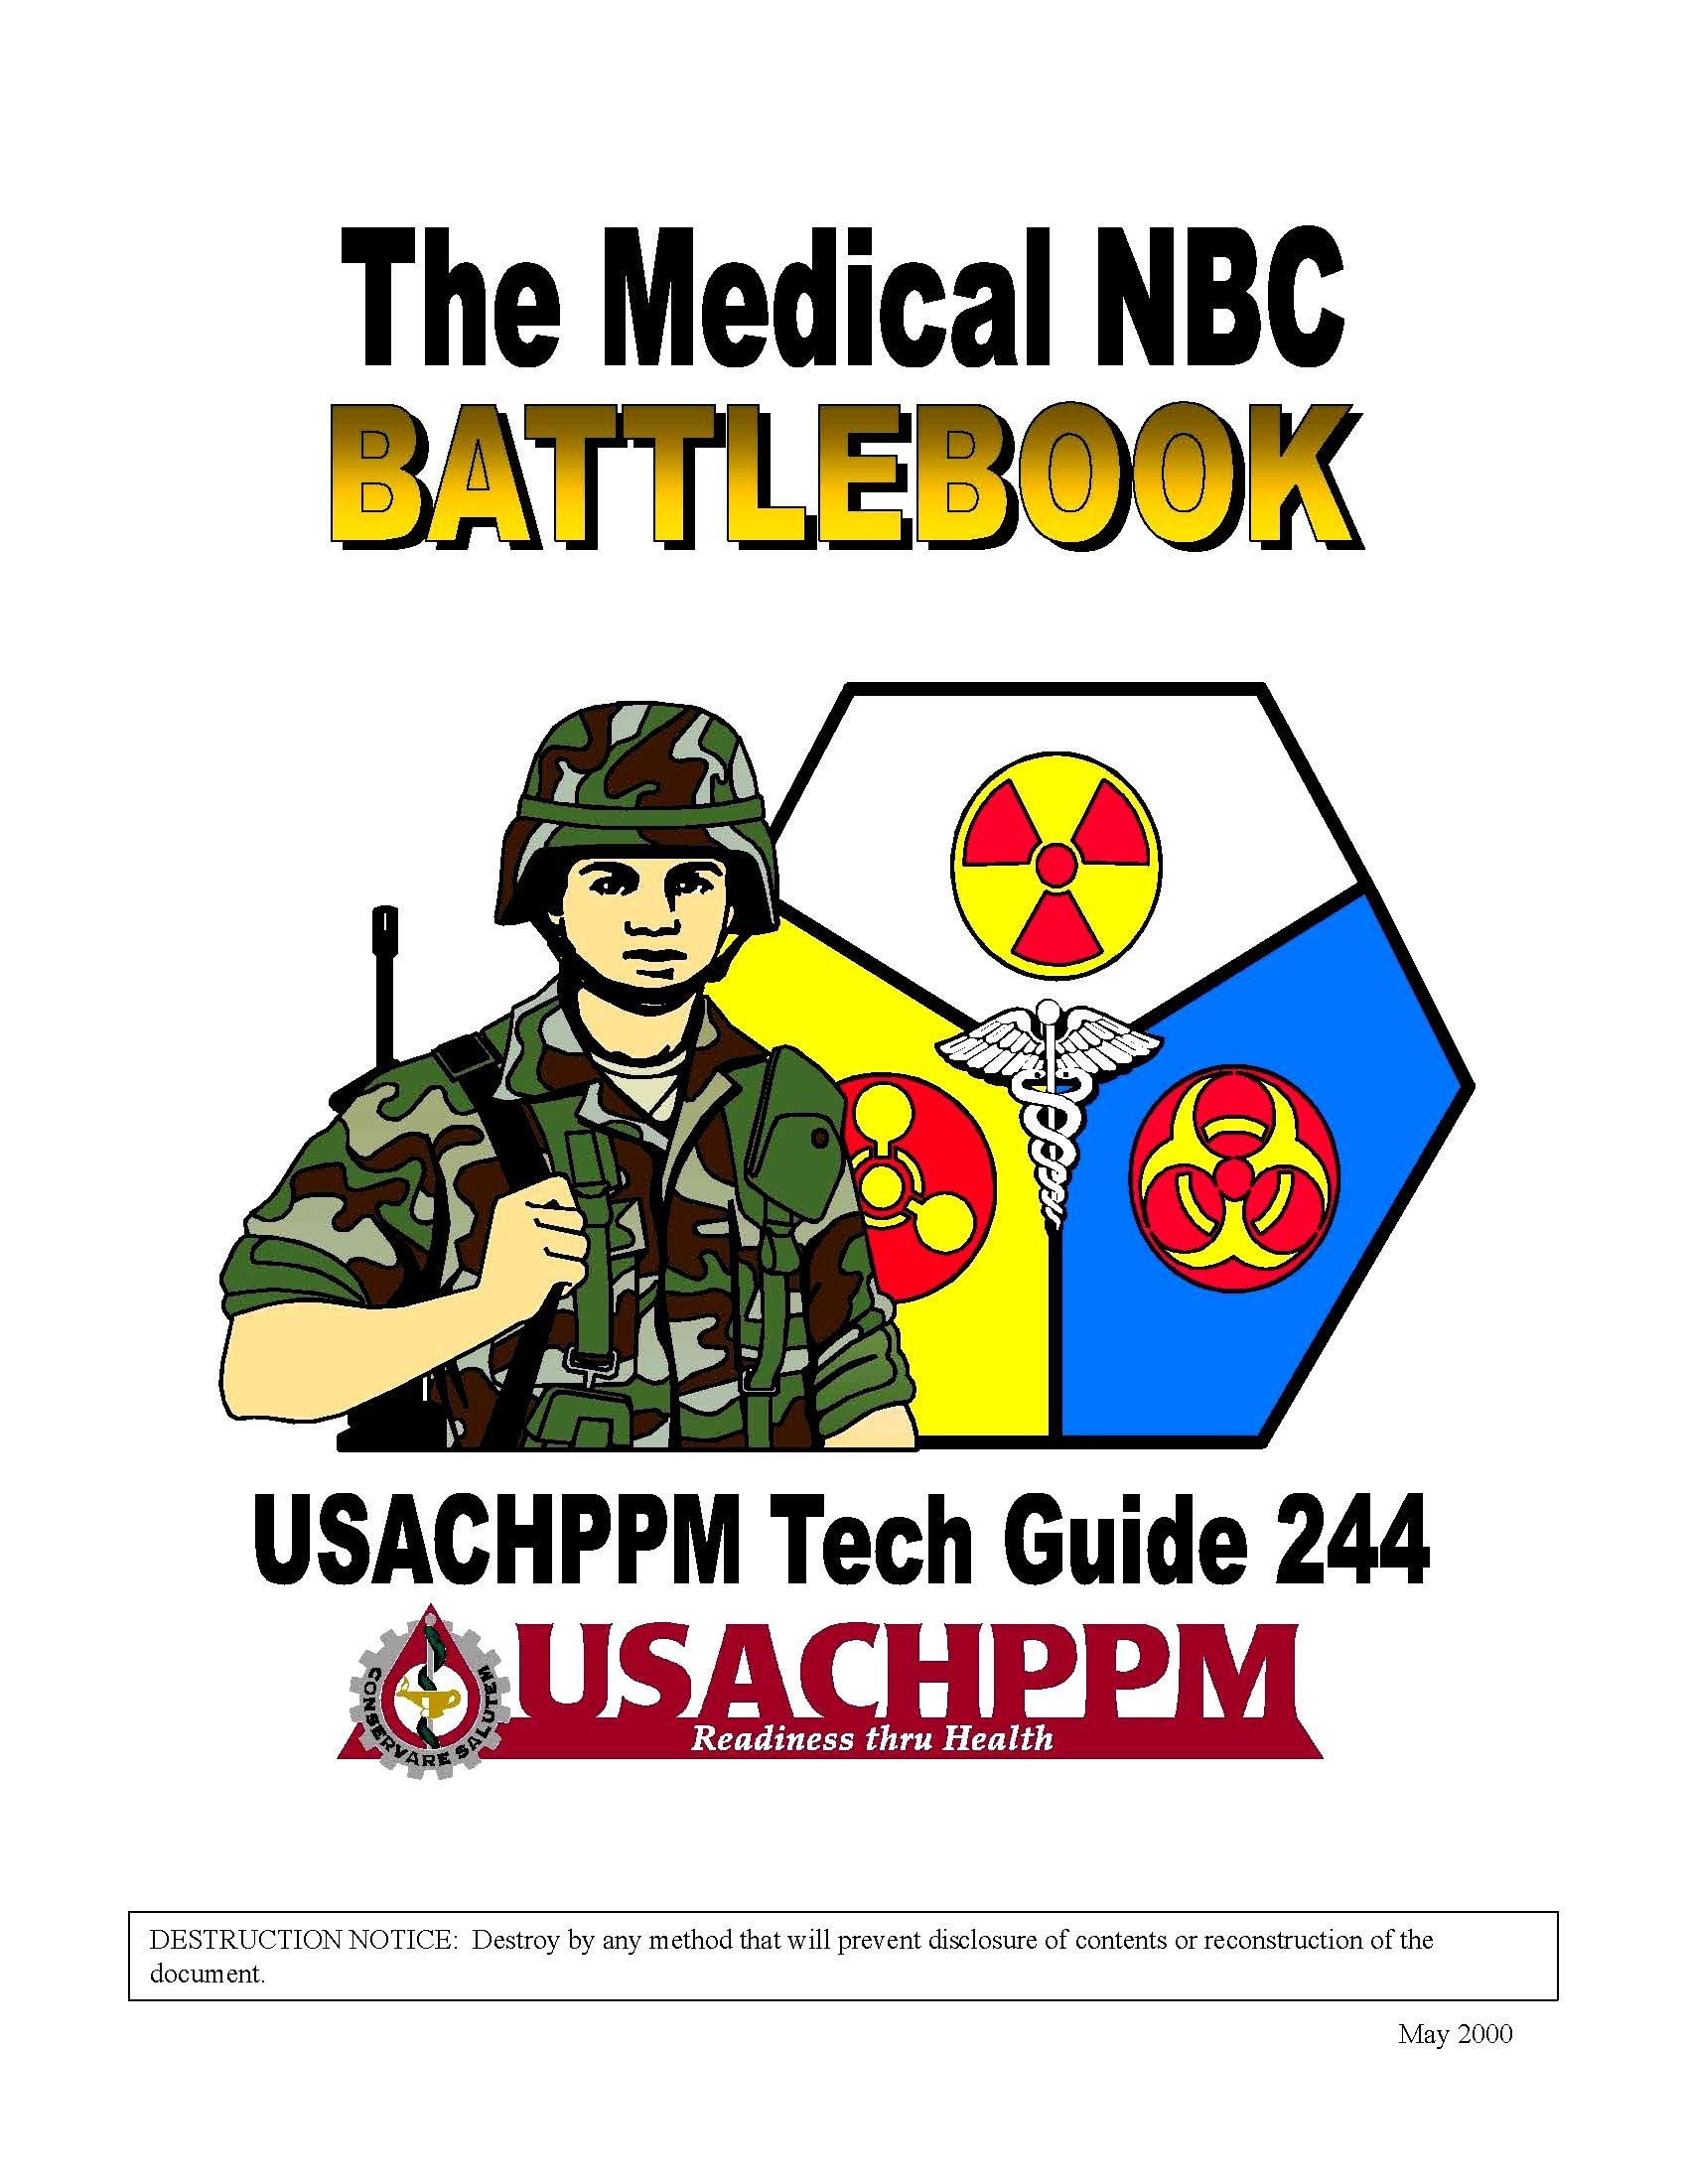 Download Medical NBC Battlebook - U.S. Army Center for Health Promotion and Preventive Medicine (USACHPPM) Tech Guide 244 [Loose Leaf Facsimile Edition] pdf